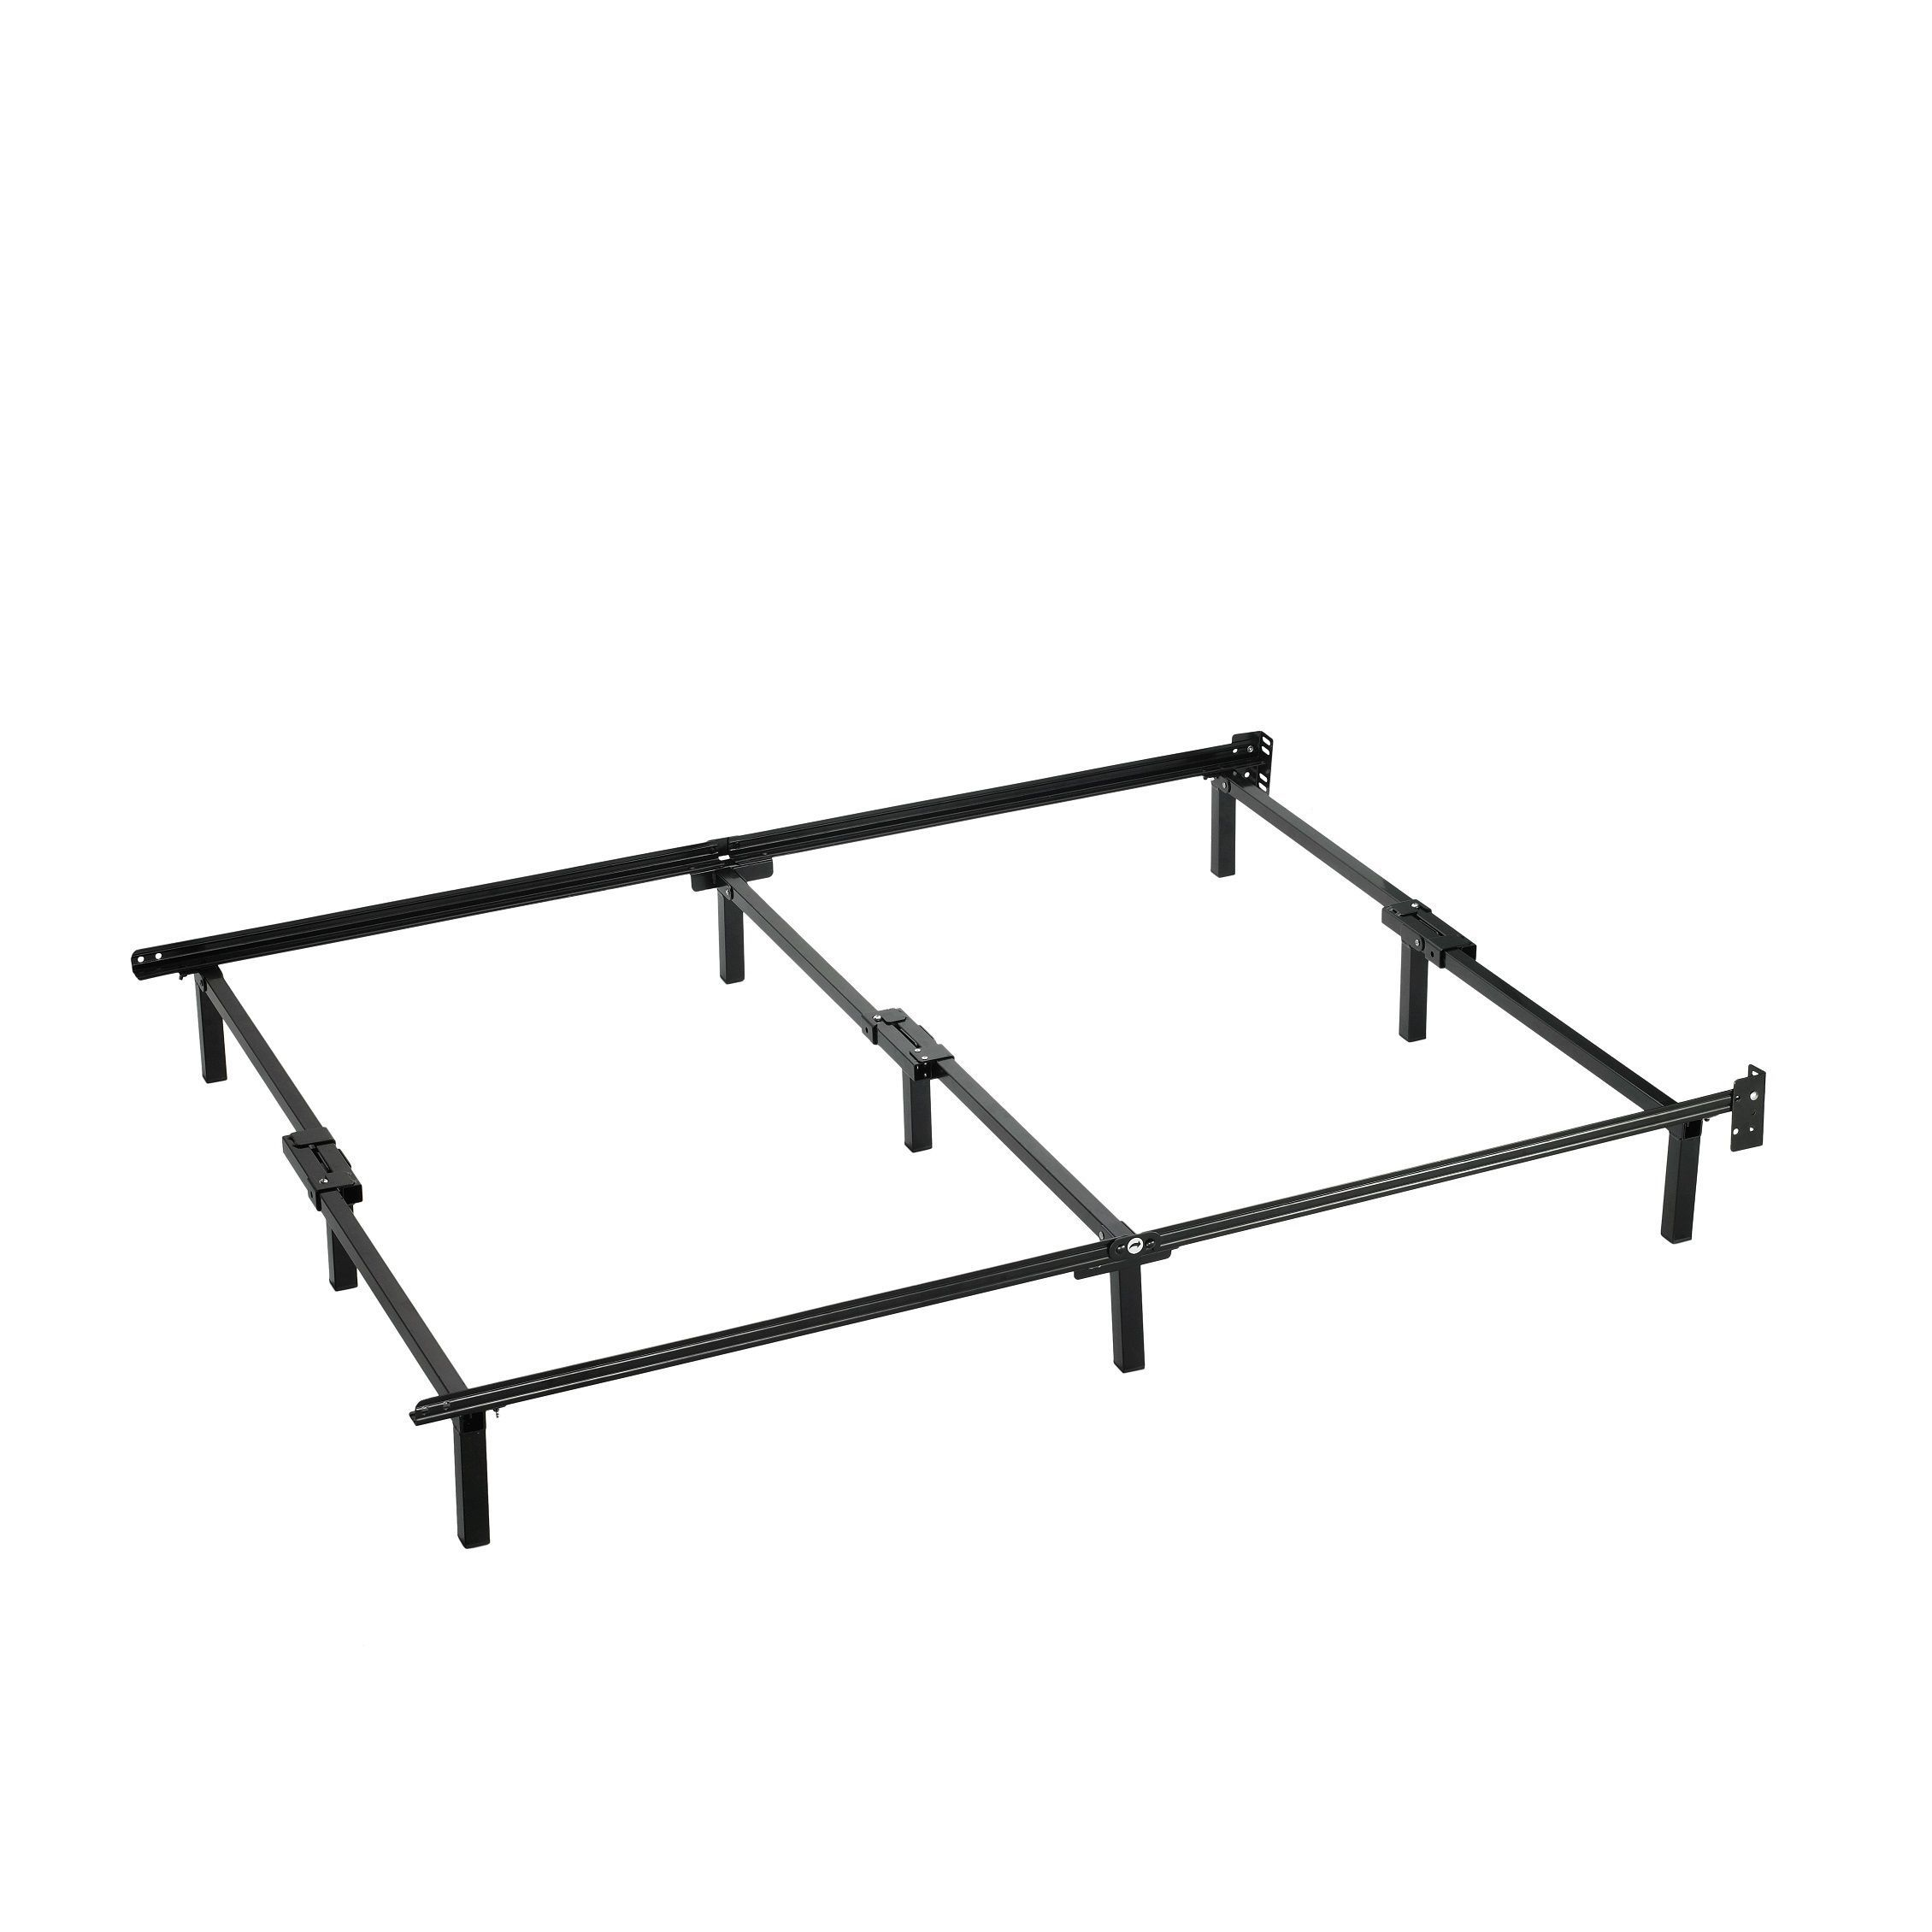 Priage Compack Black Steel Adjustable Twin To Queen Size